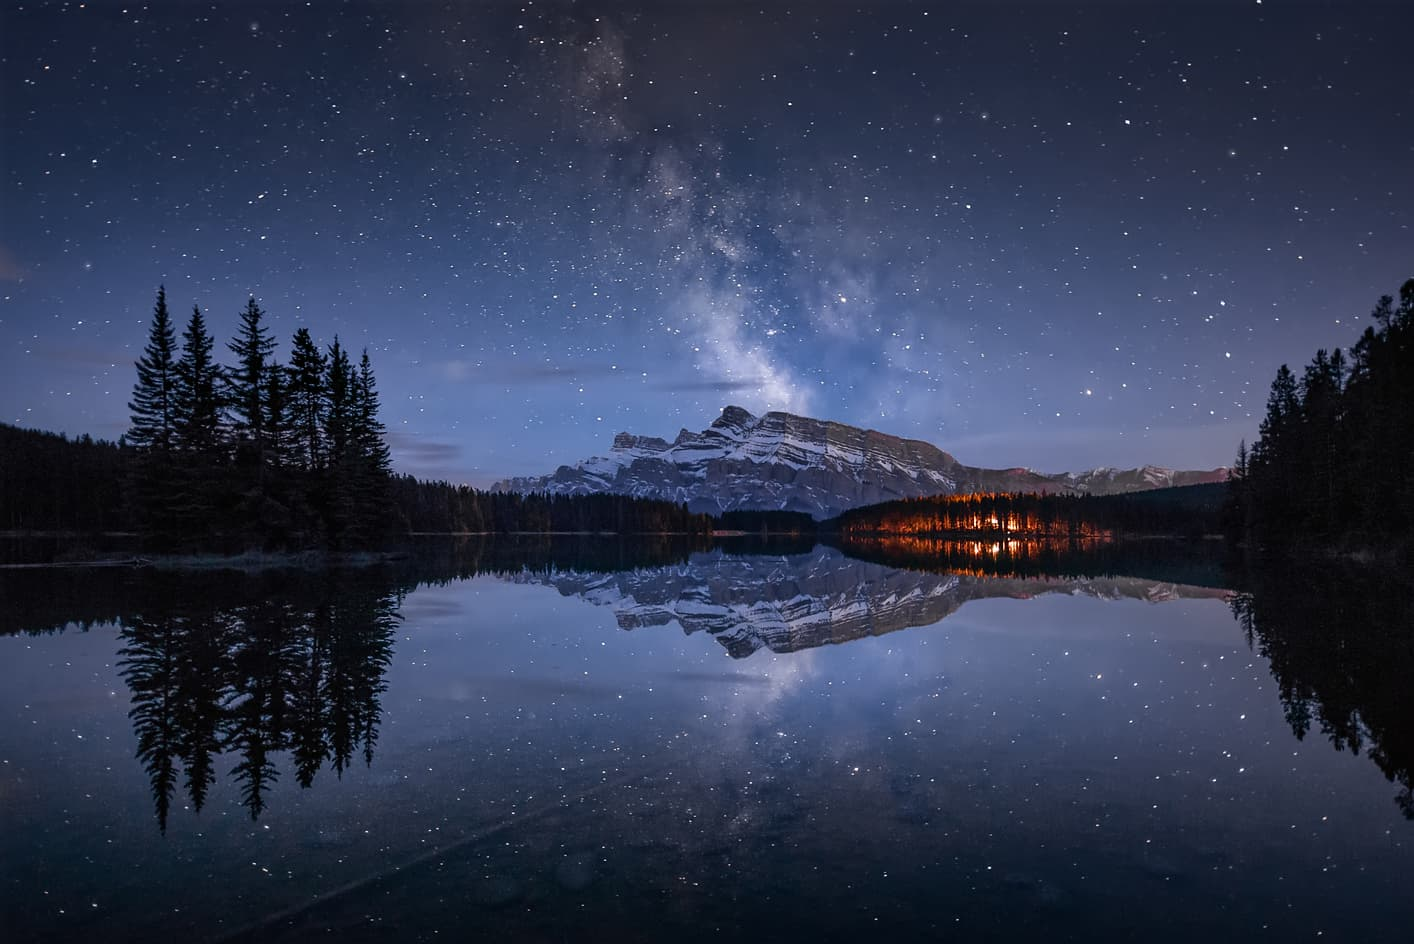 Milky way two jack lake banff canada alberta mirror pines sky photography night banff things you cannot miss at the canadian rockies campgrounds